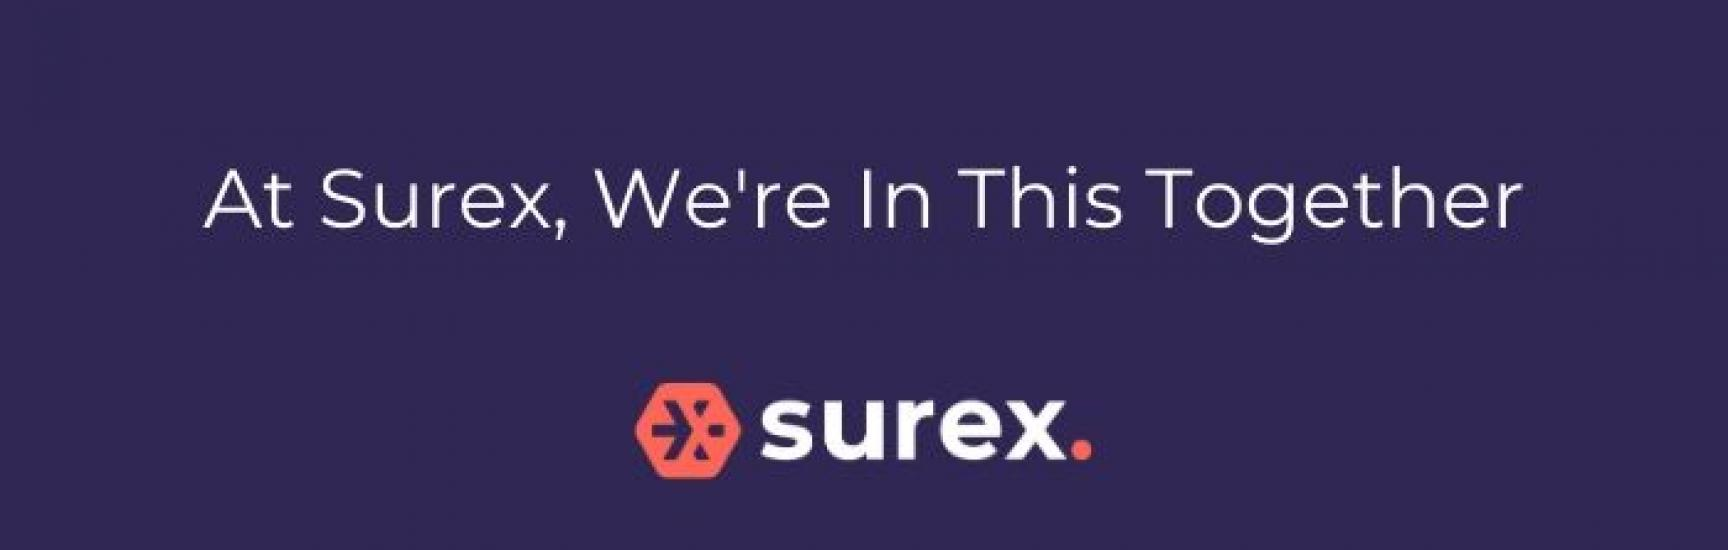 At Surex, we're in this together